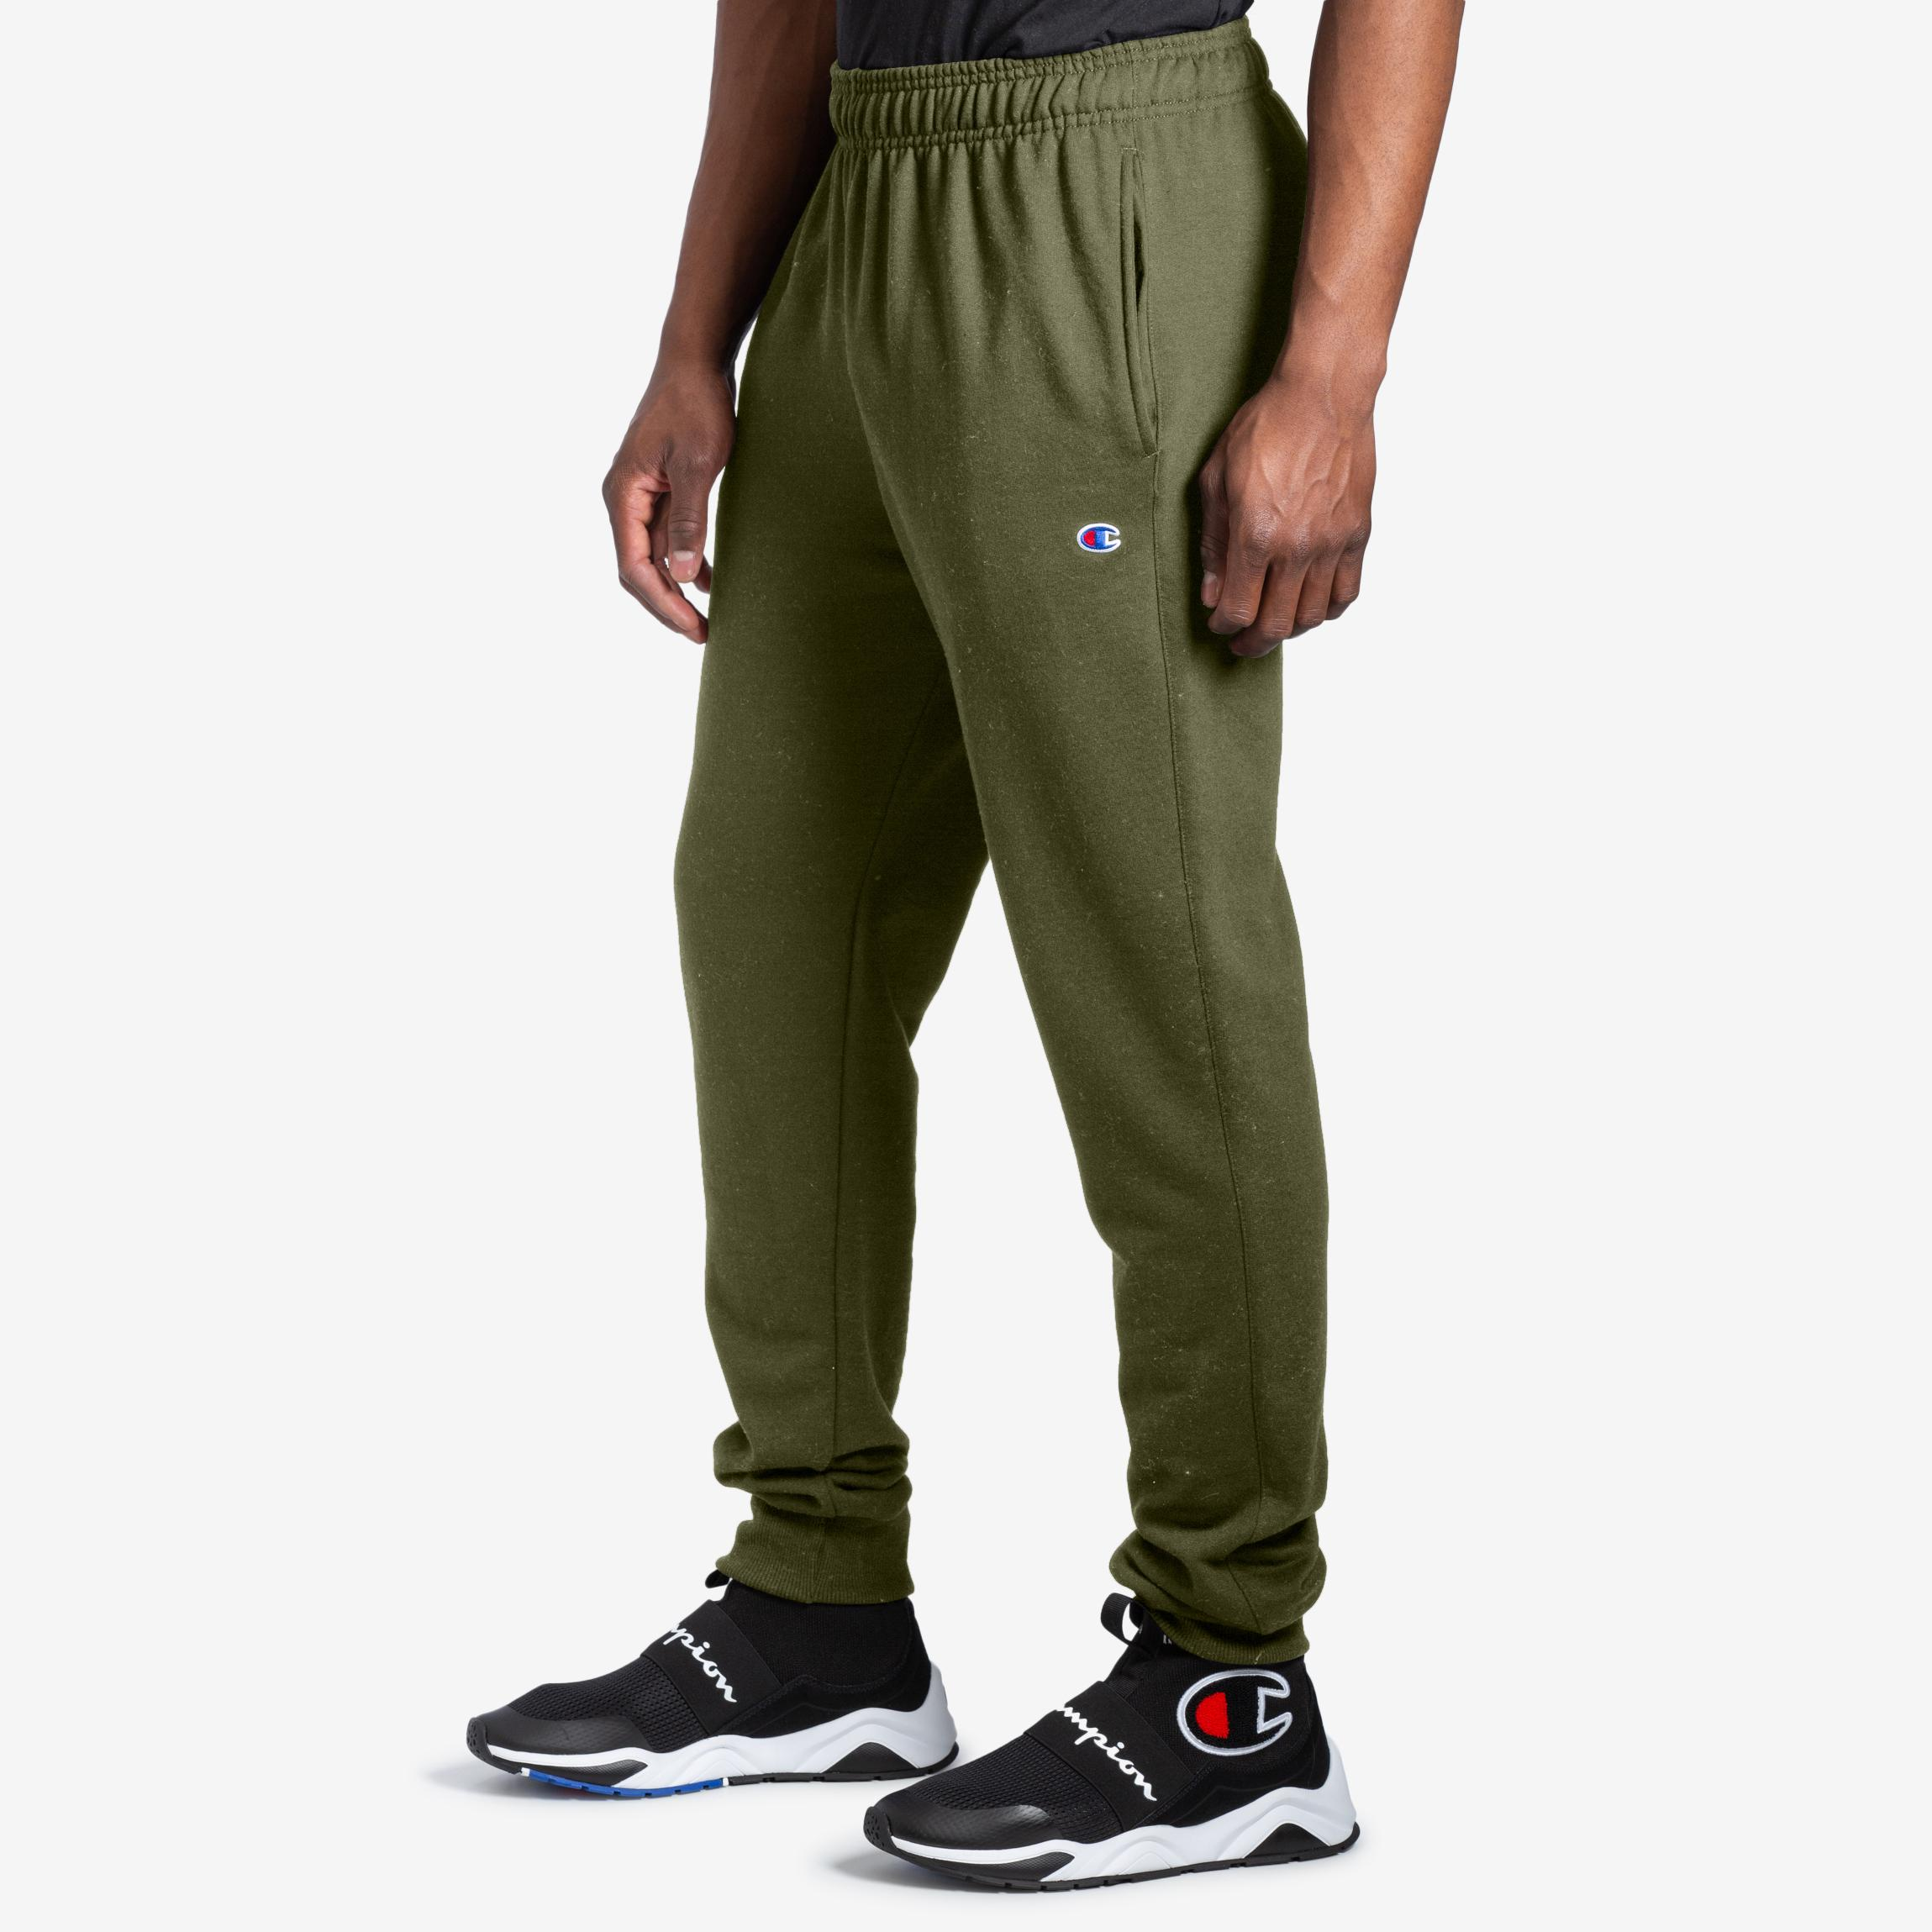 Men's Powerblend Sweats Retro Jogger Pants